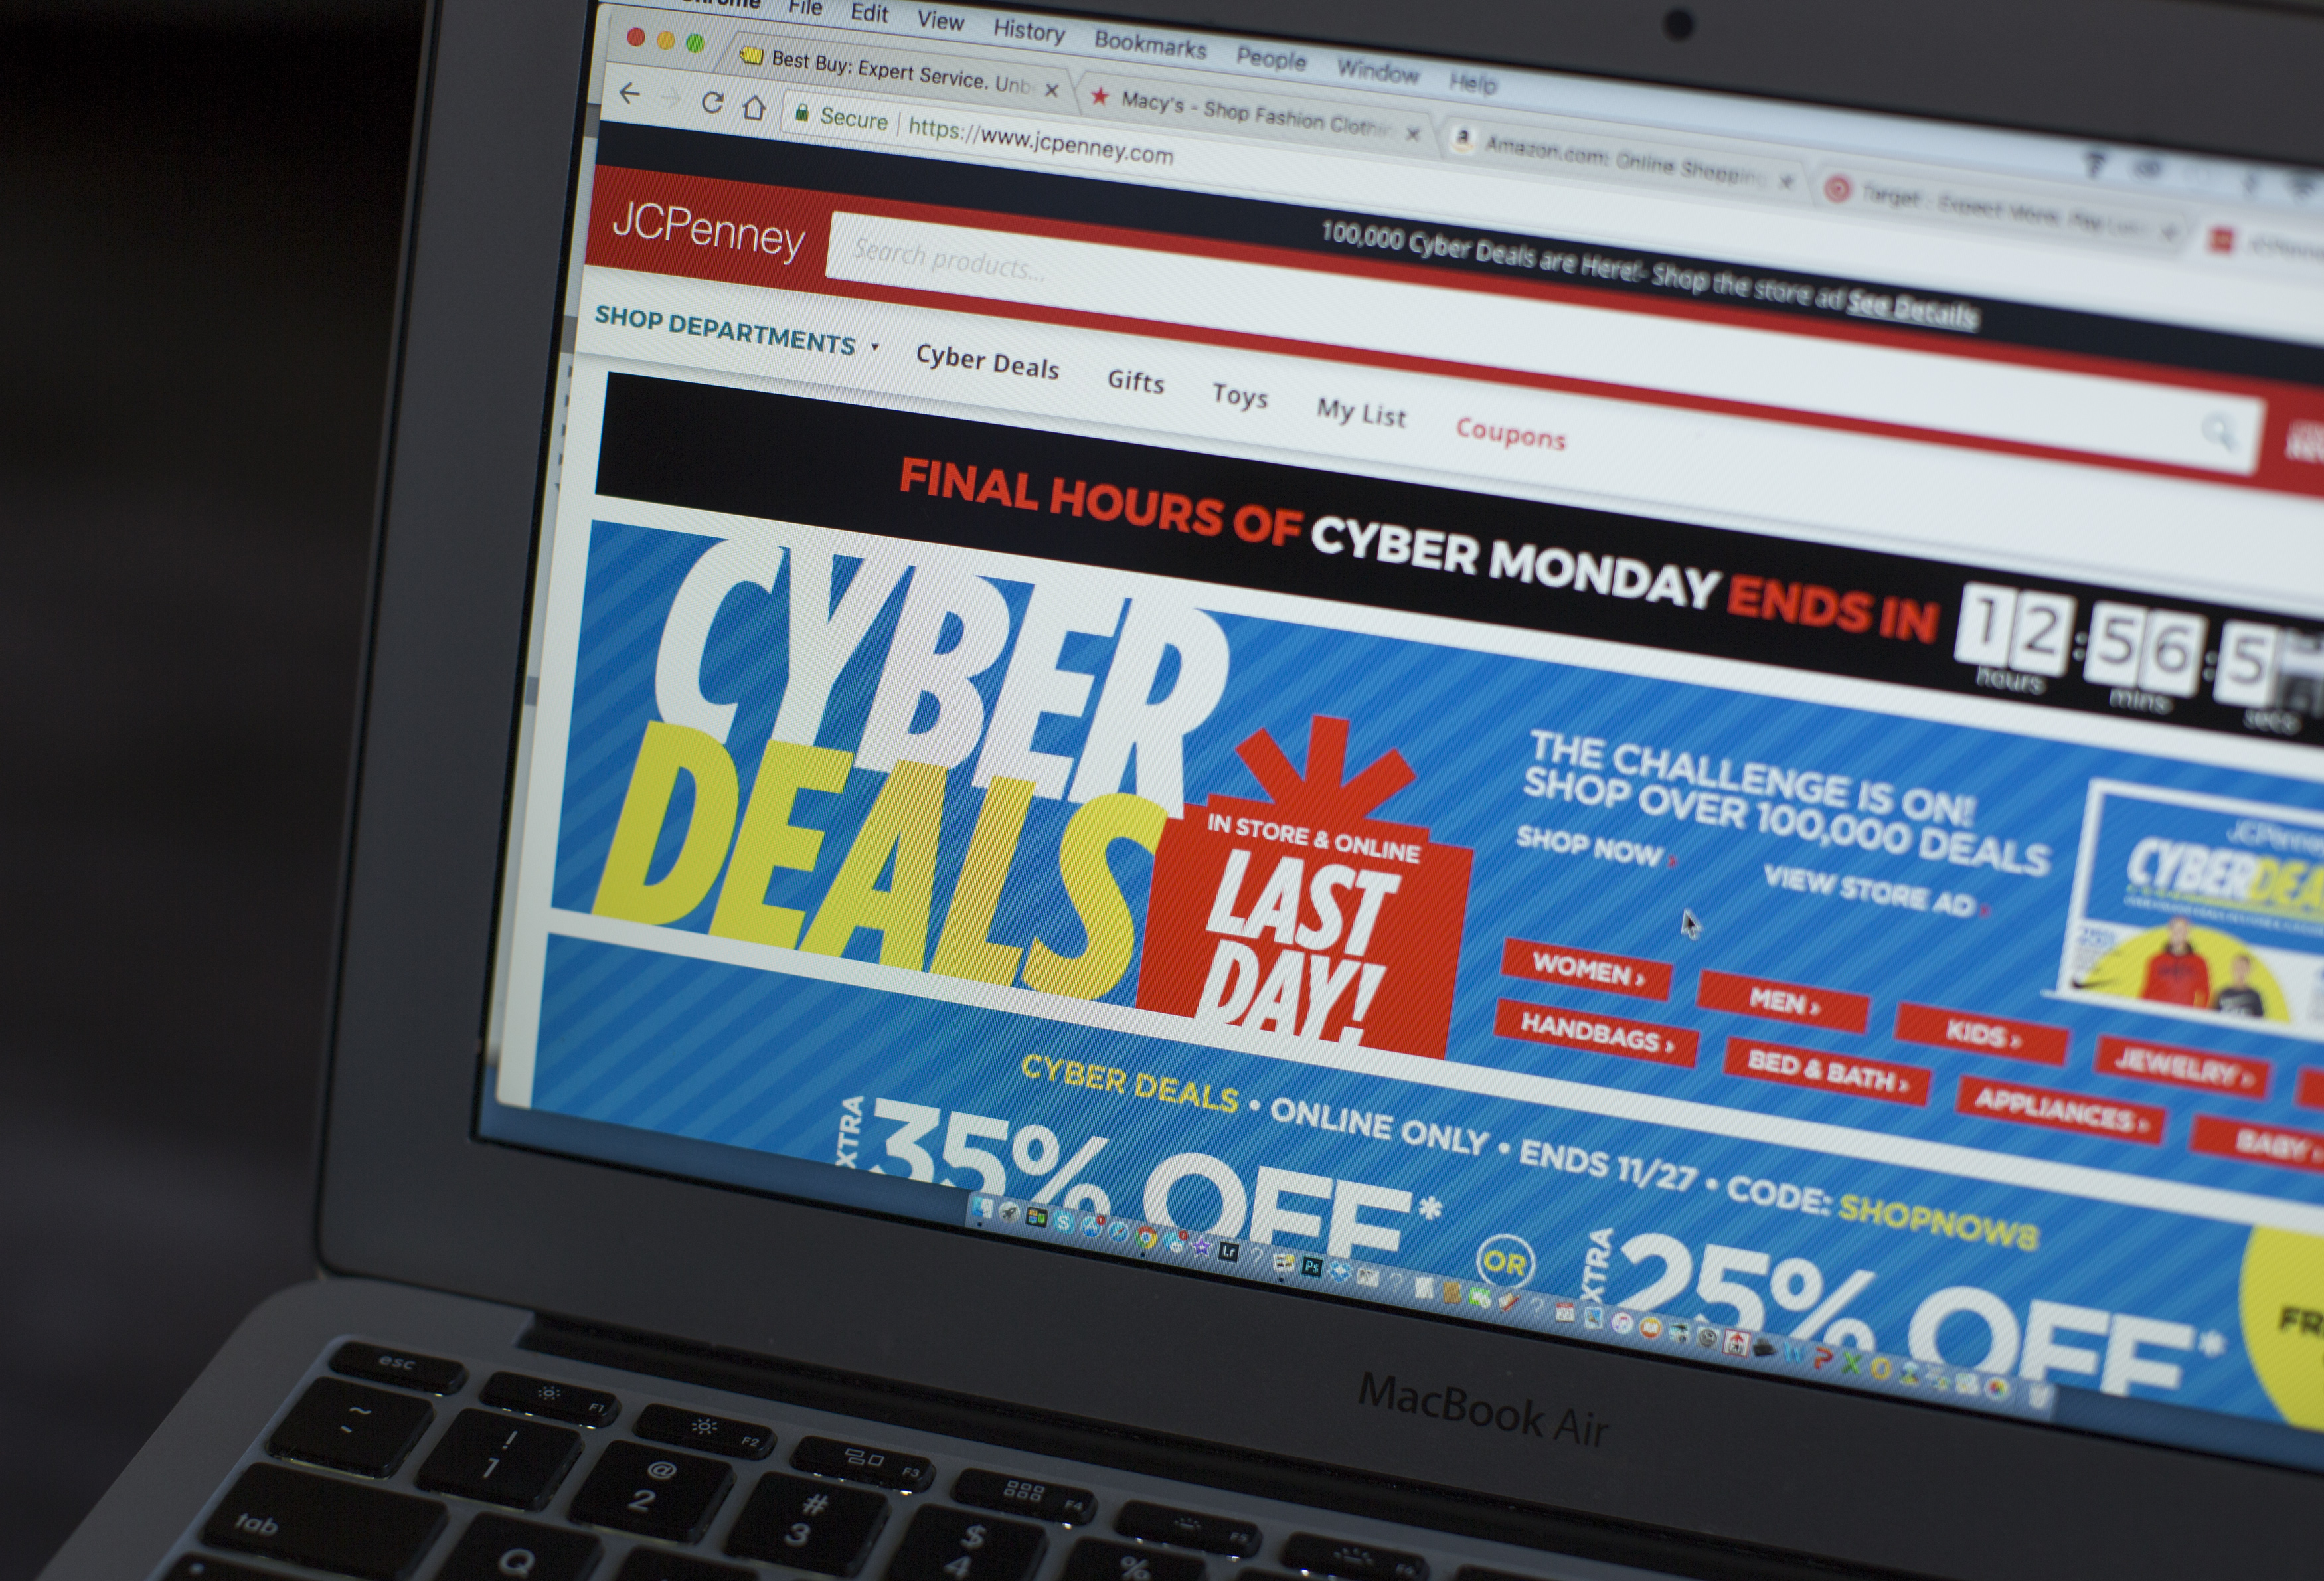 Americans expect to spend $6.6 billion on Cyber Monday deals